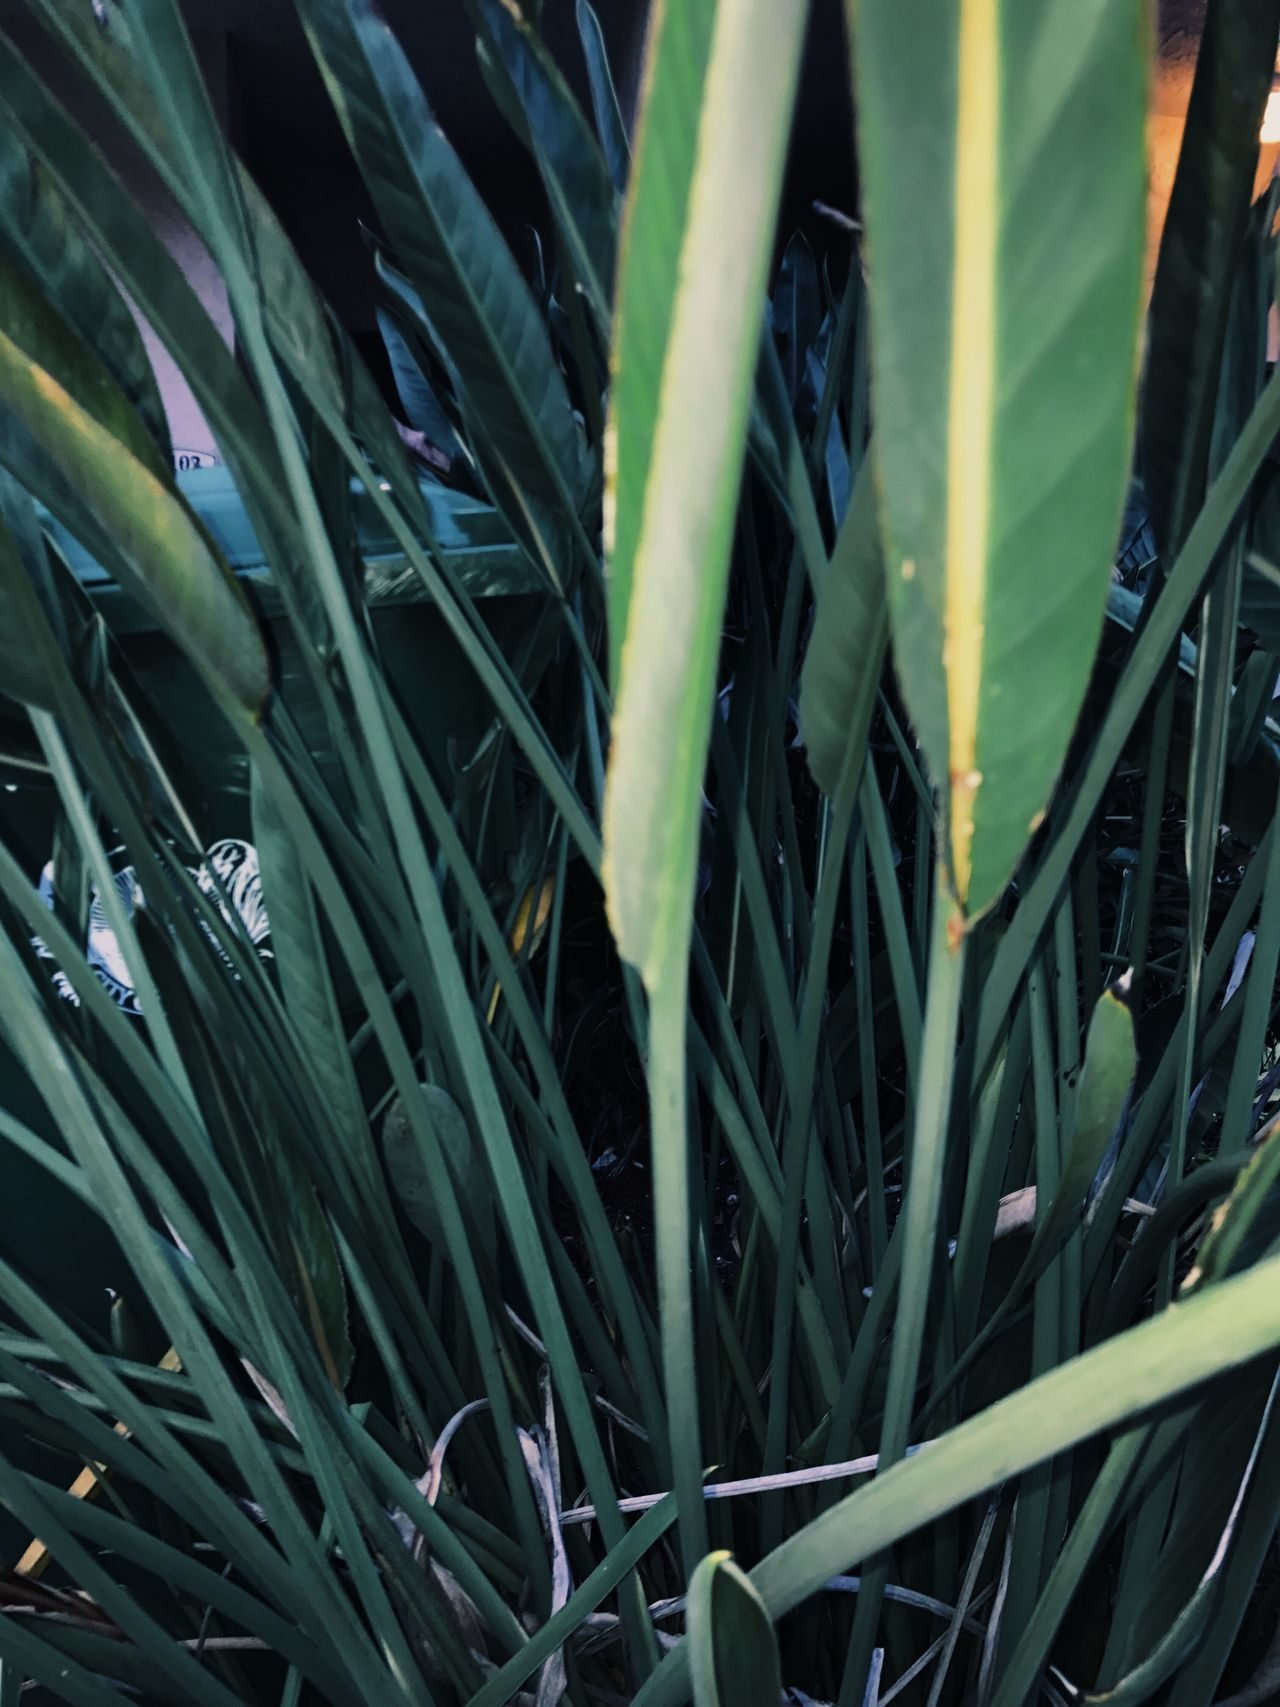 Growth Green Color Plant Leaf Grass Nature No People Close-up Day Beauty In Nature Agriculture Outdoors Bamboo - Plant Freshness